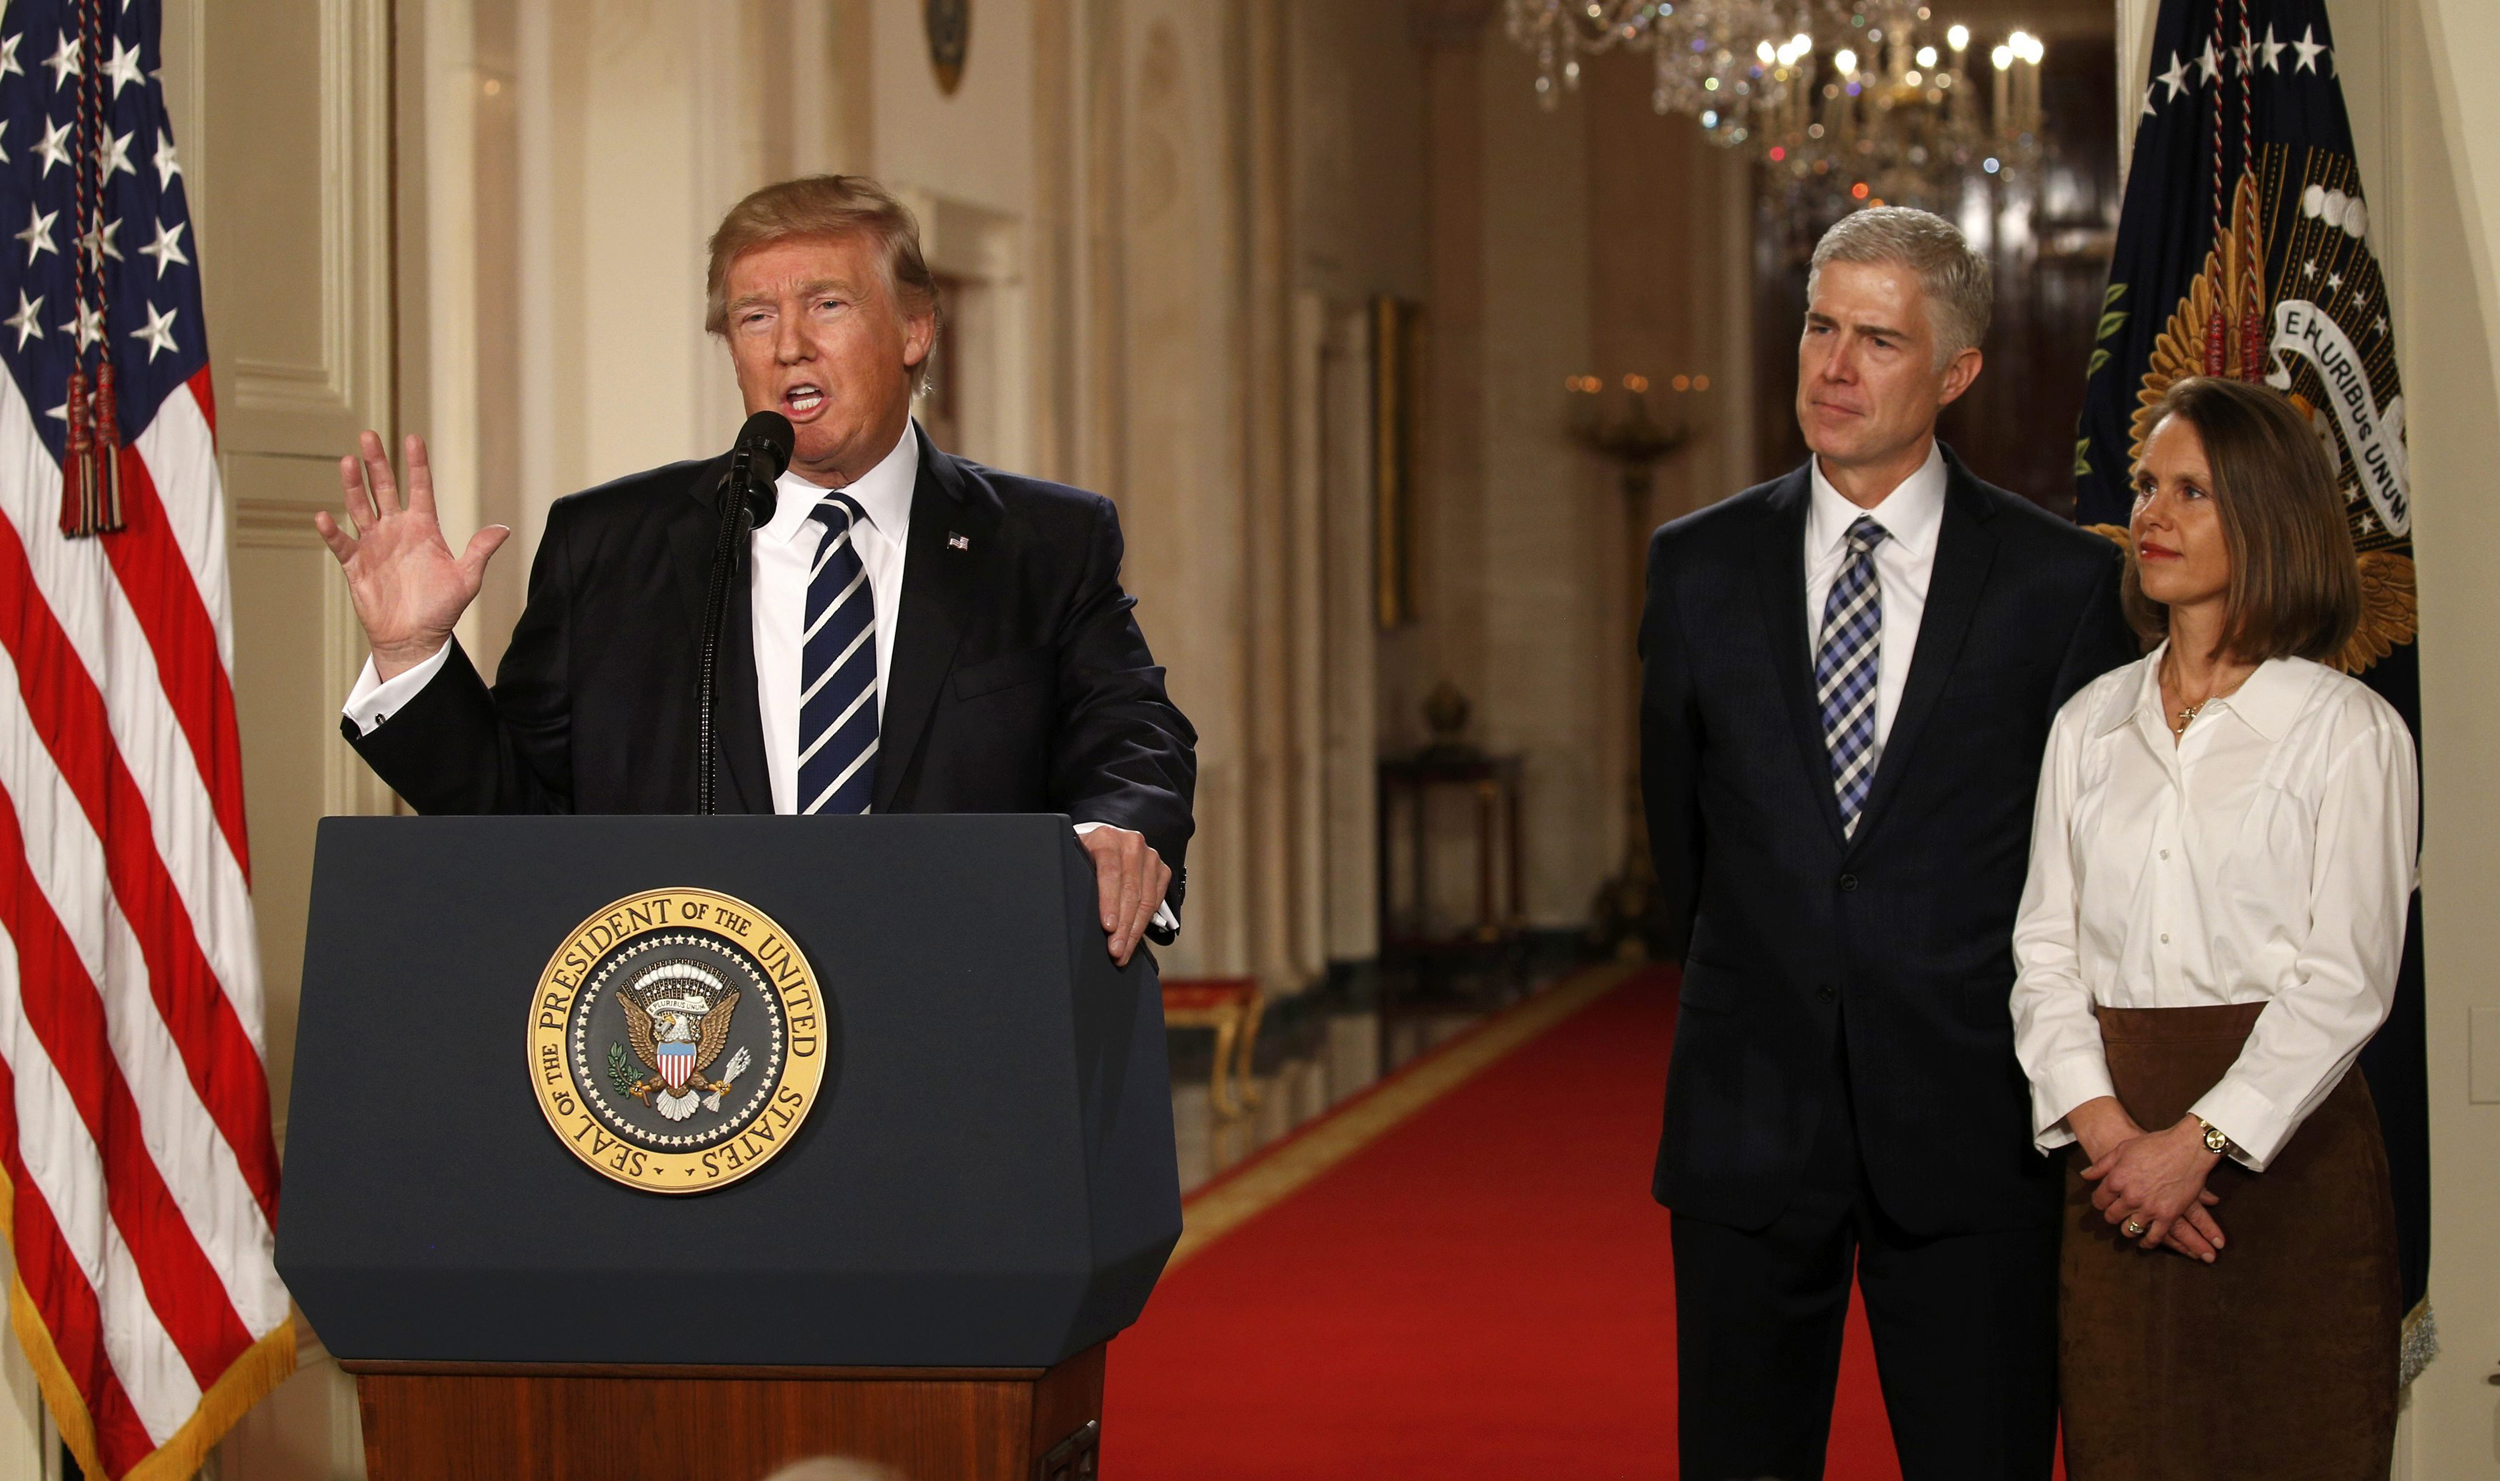 Image: U.S. President Donald Trump announces his nomination of Neil Gorsuch to be an associate justice of the U.S. Supreme Court in Washington